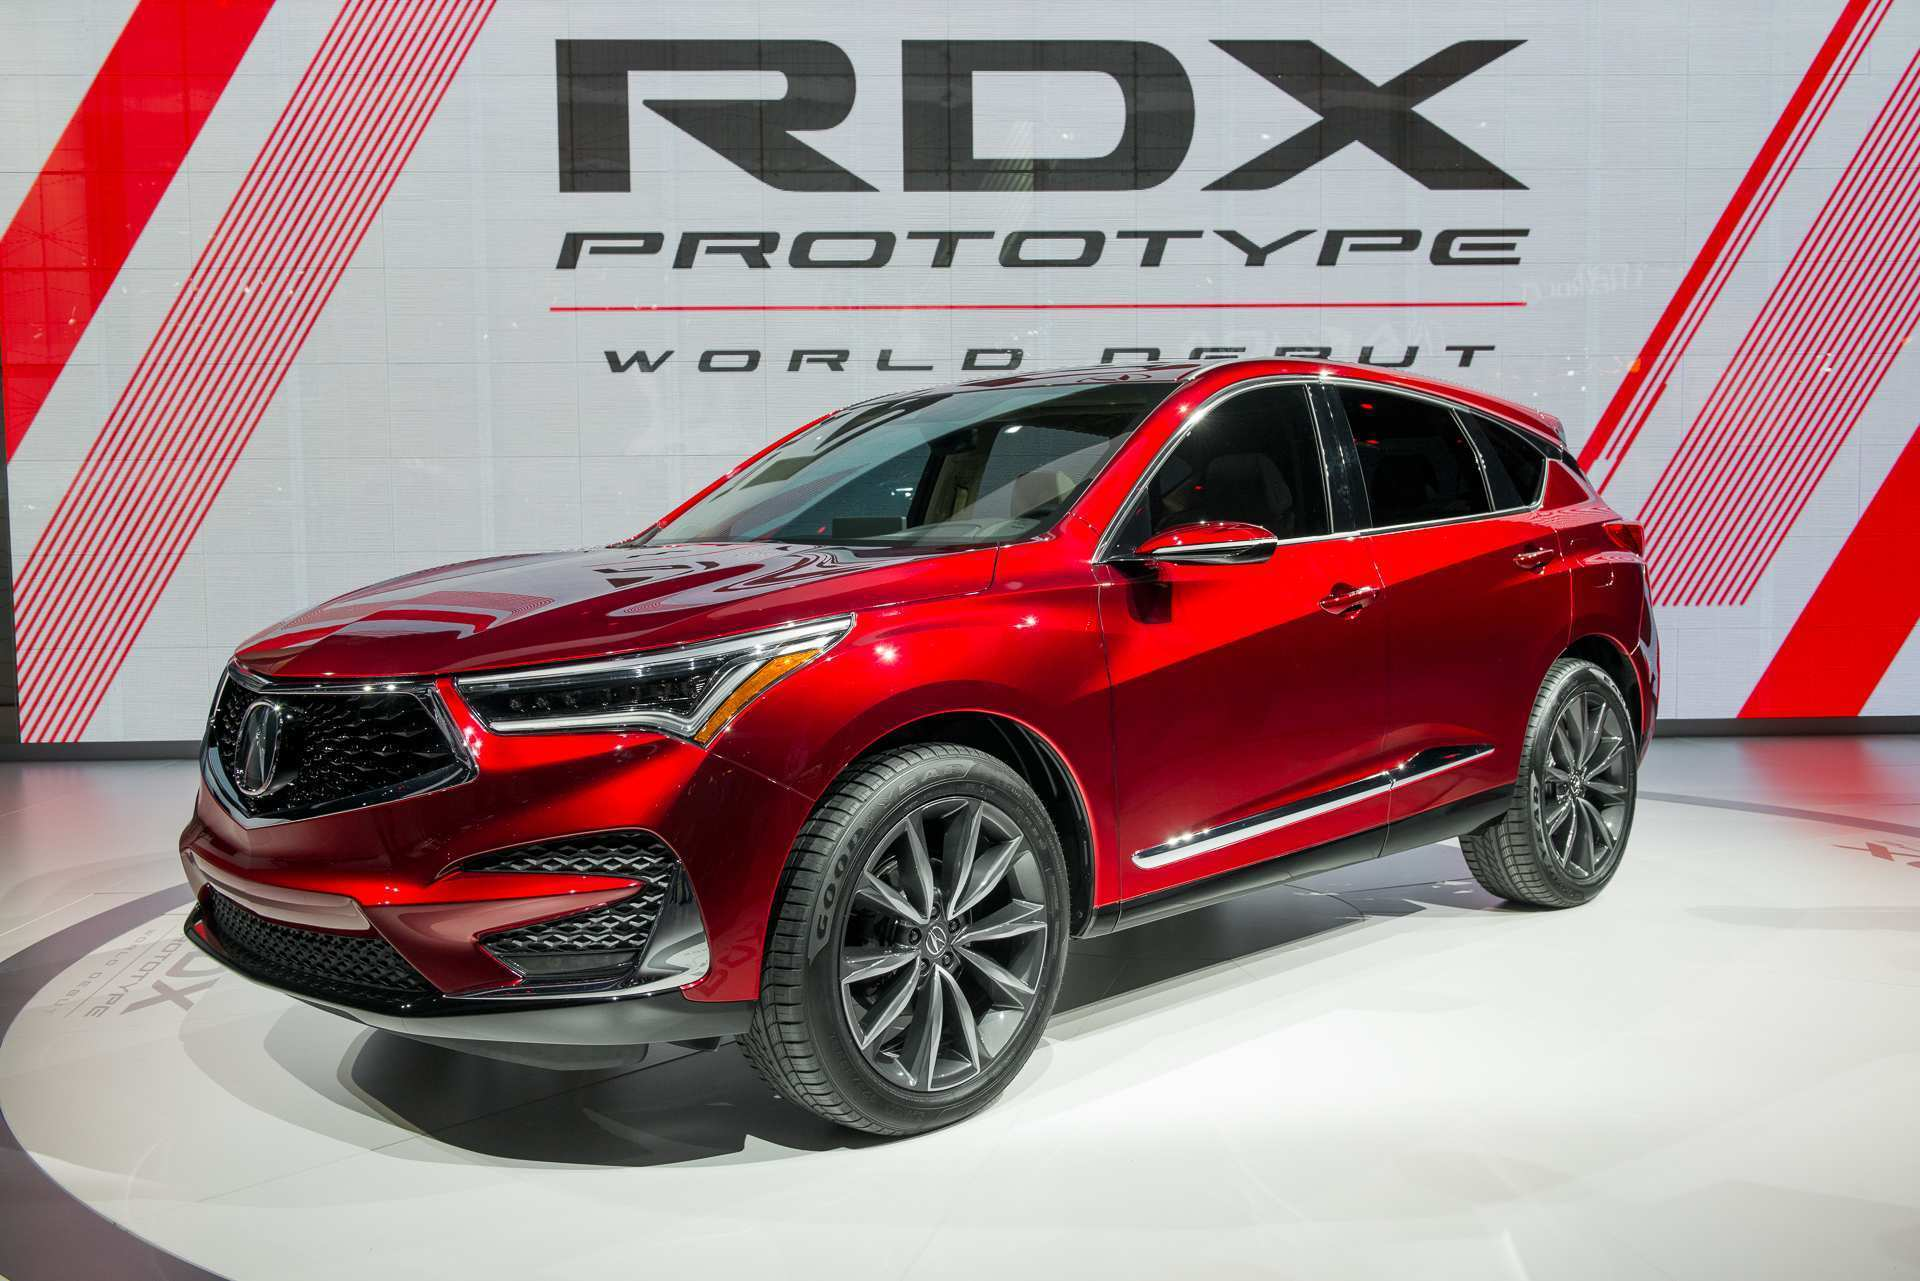 53 New The Acura Rdx 2019 Release Date Usa Spy Shoot Interior with The Acura Rdx 2019 Release Date Usa Spy Shoot